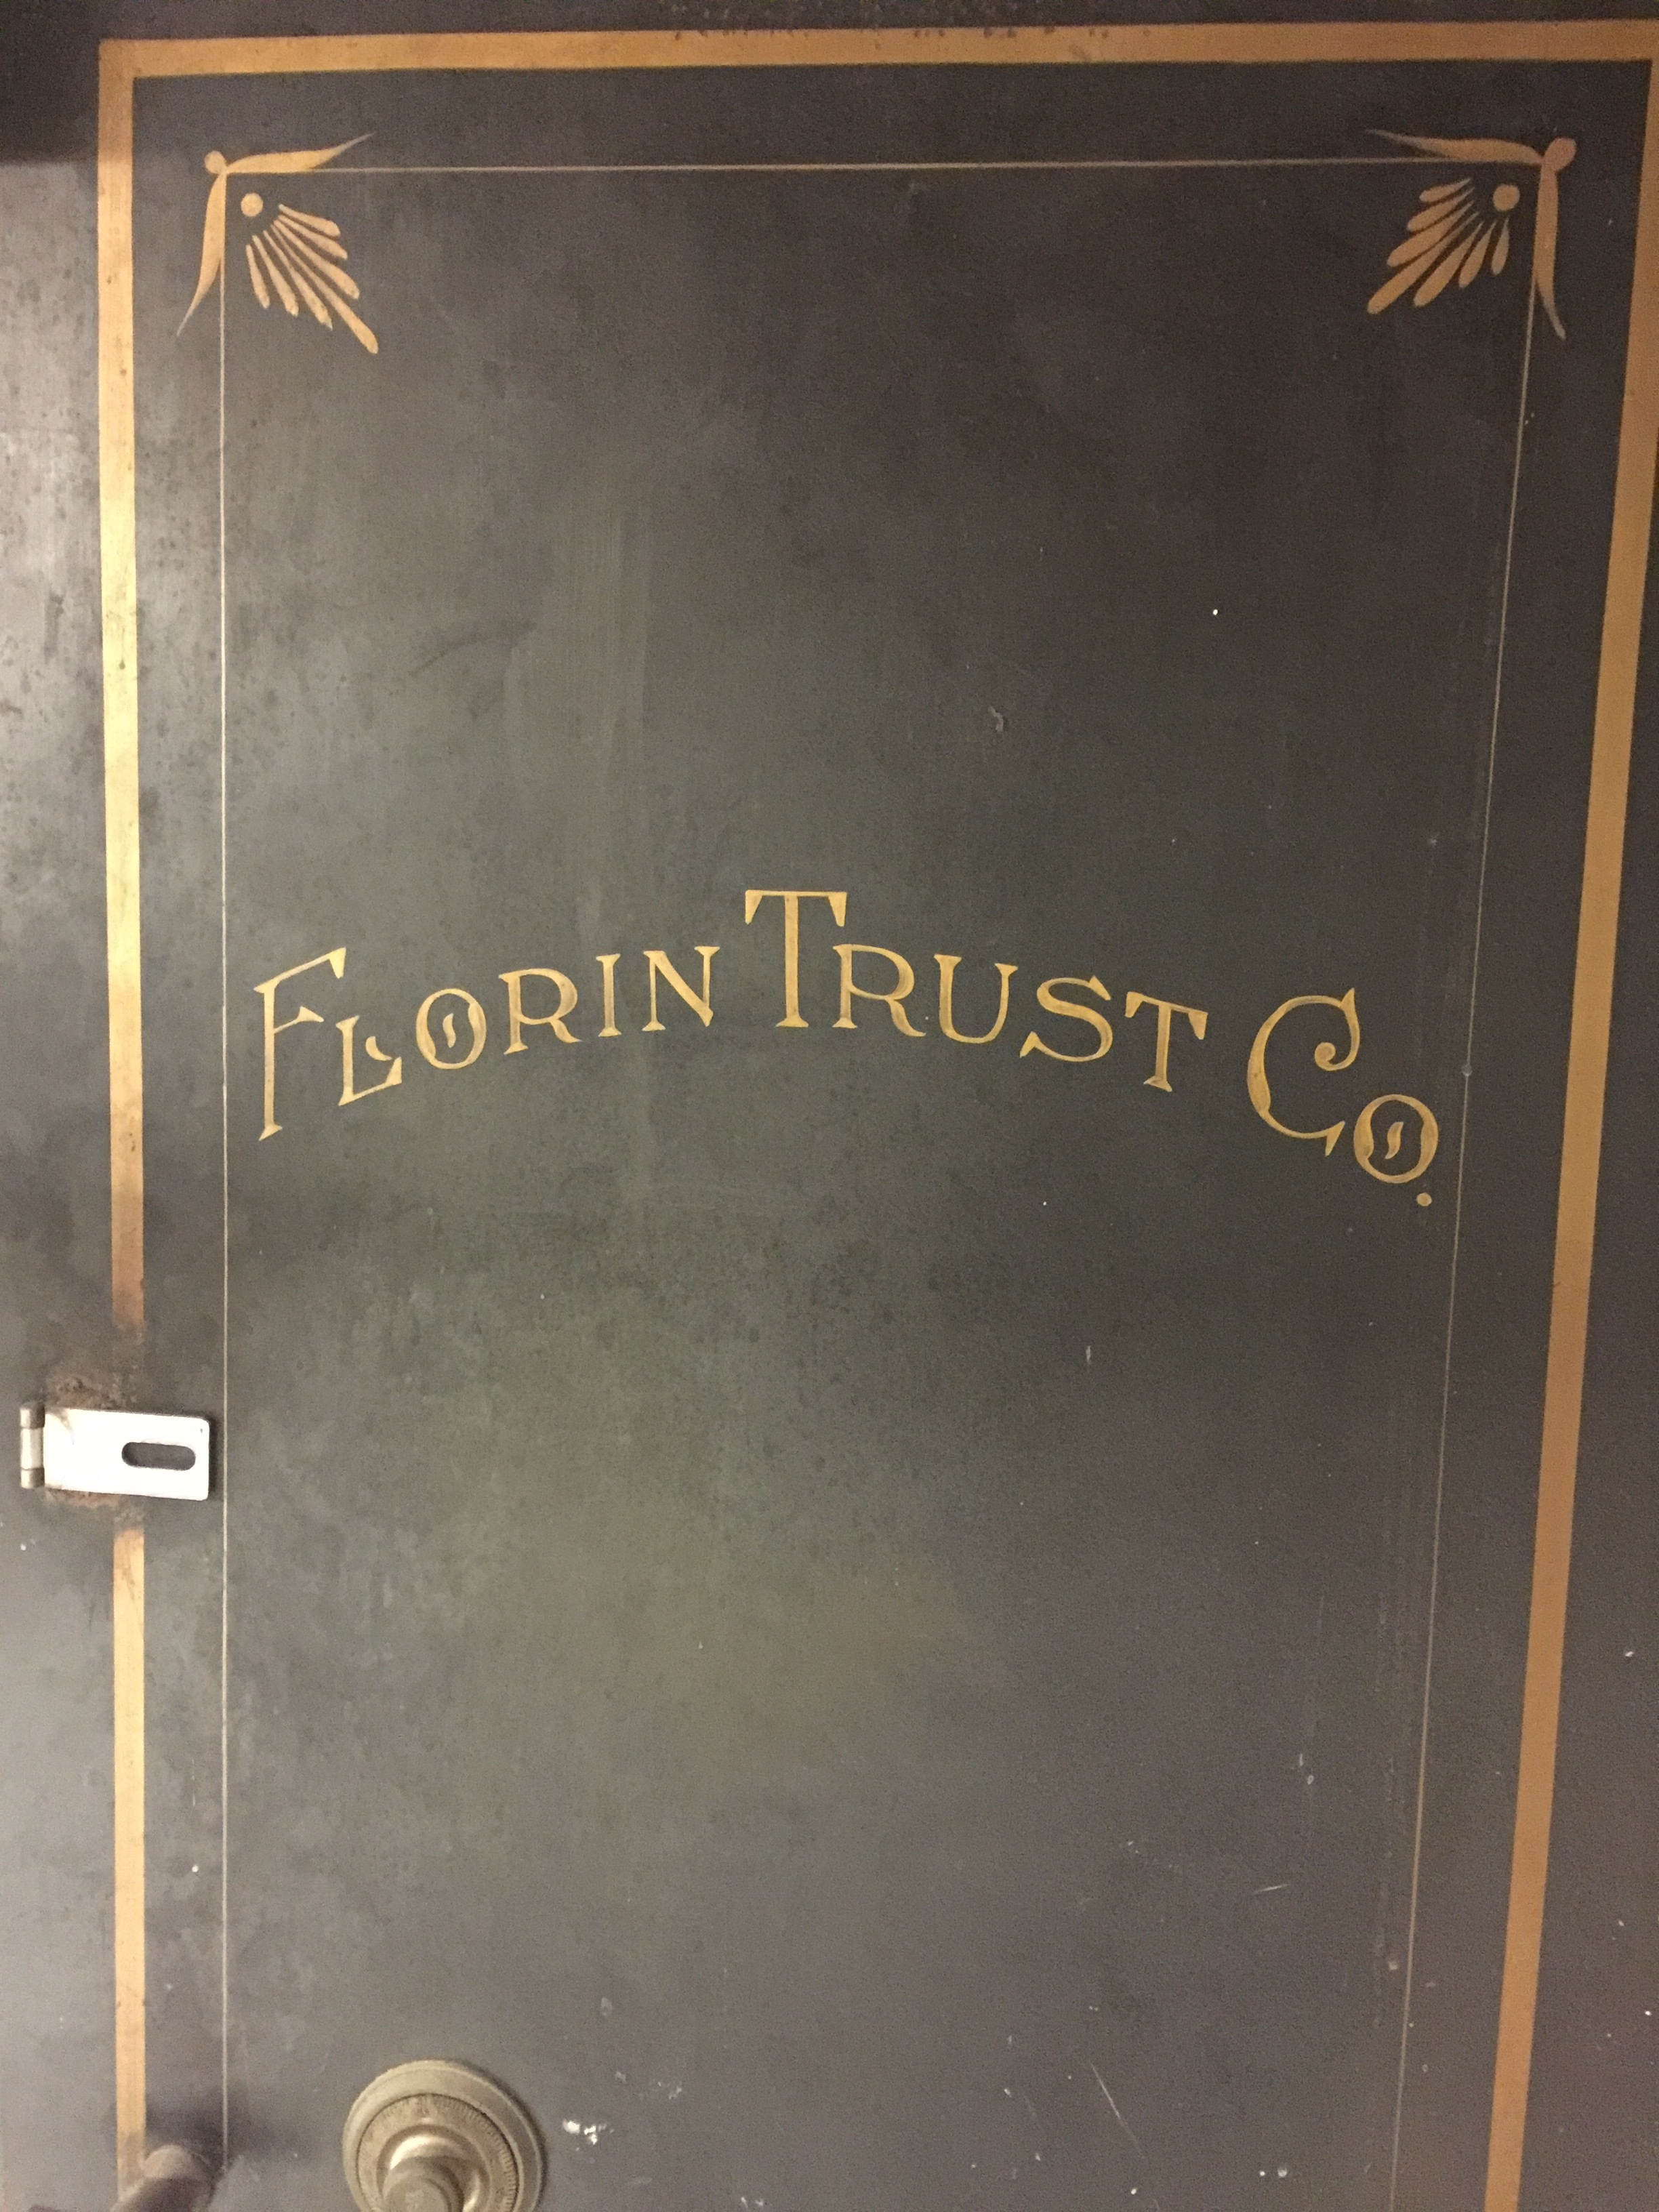 Original bank name on basement vault